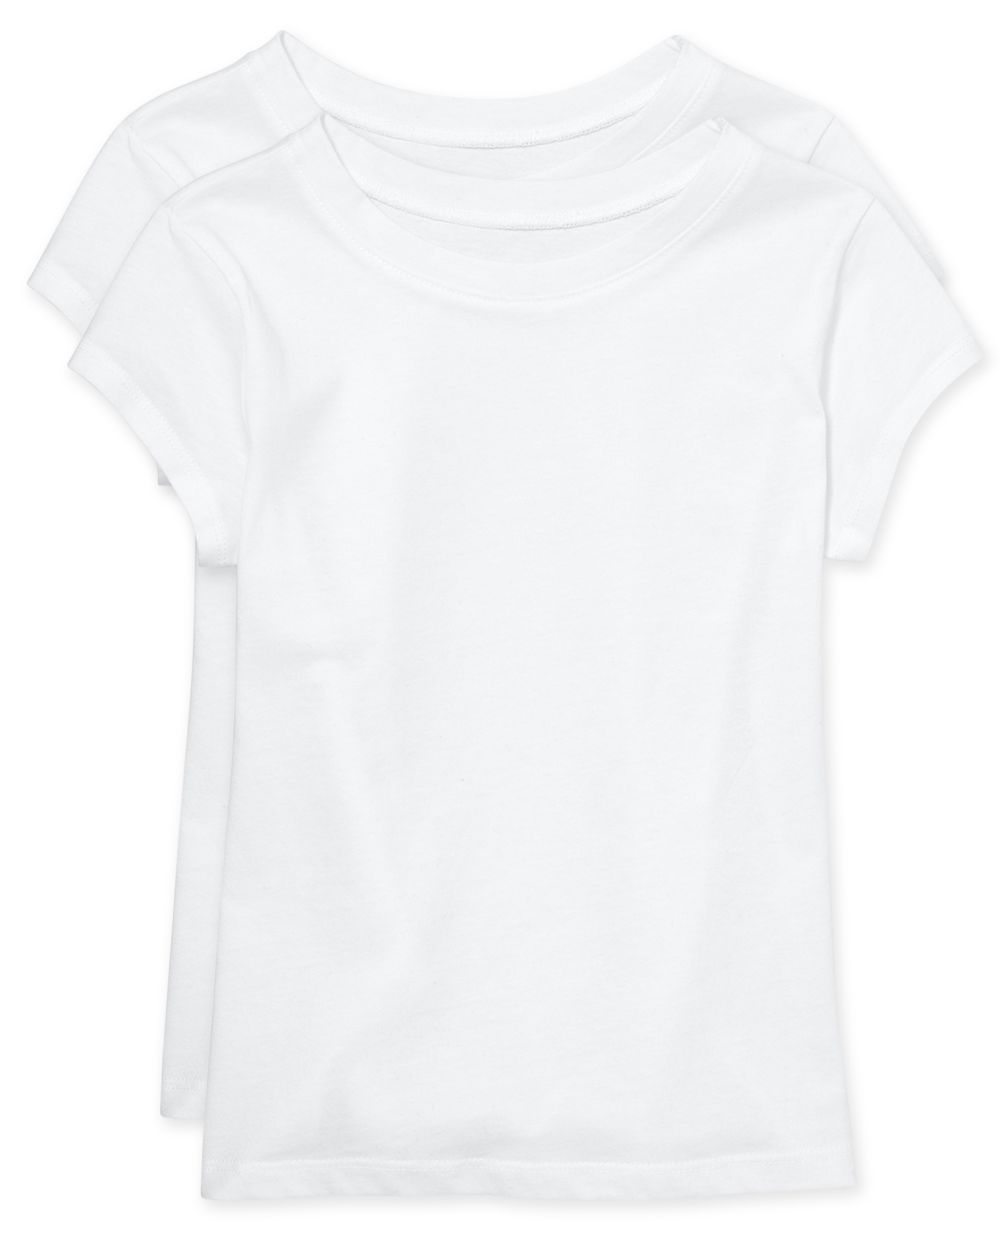 Girls Uniform Basic Layering Tee 2-Pack